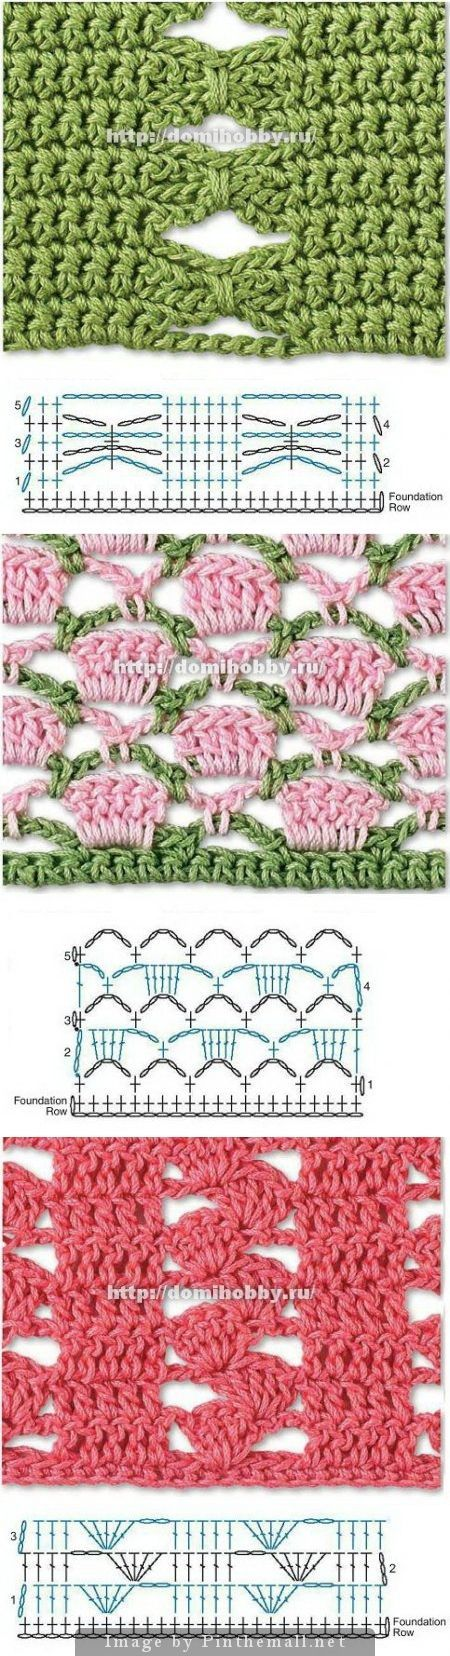 Beautiful Crochet Stitches - many more on this site - all with ...